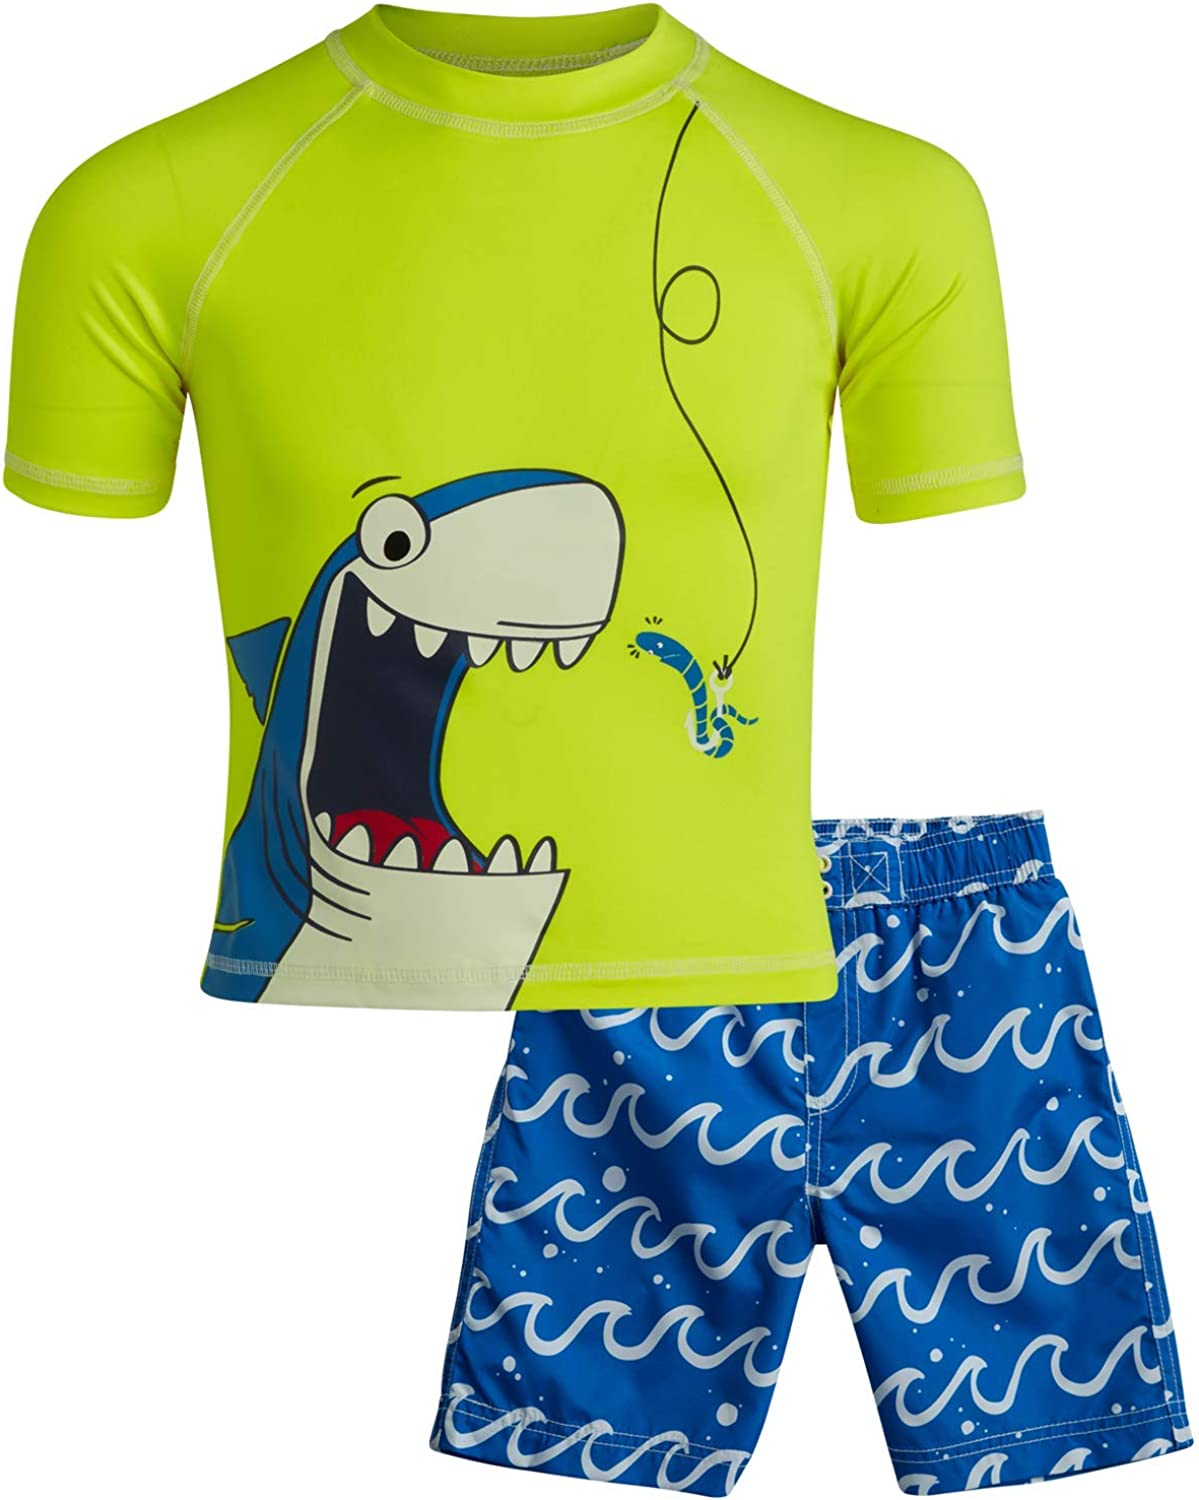 Sharks//Crabs//Dinosaurs Infant//Toddlers Wippette Boys Swimwear Rash Guard UPF 50+ and Swimsuit Trunk 2-Piece Set